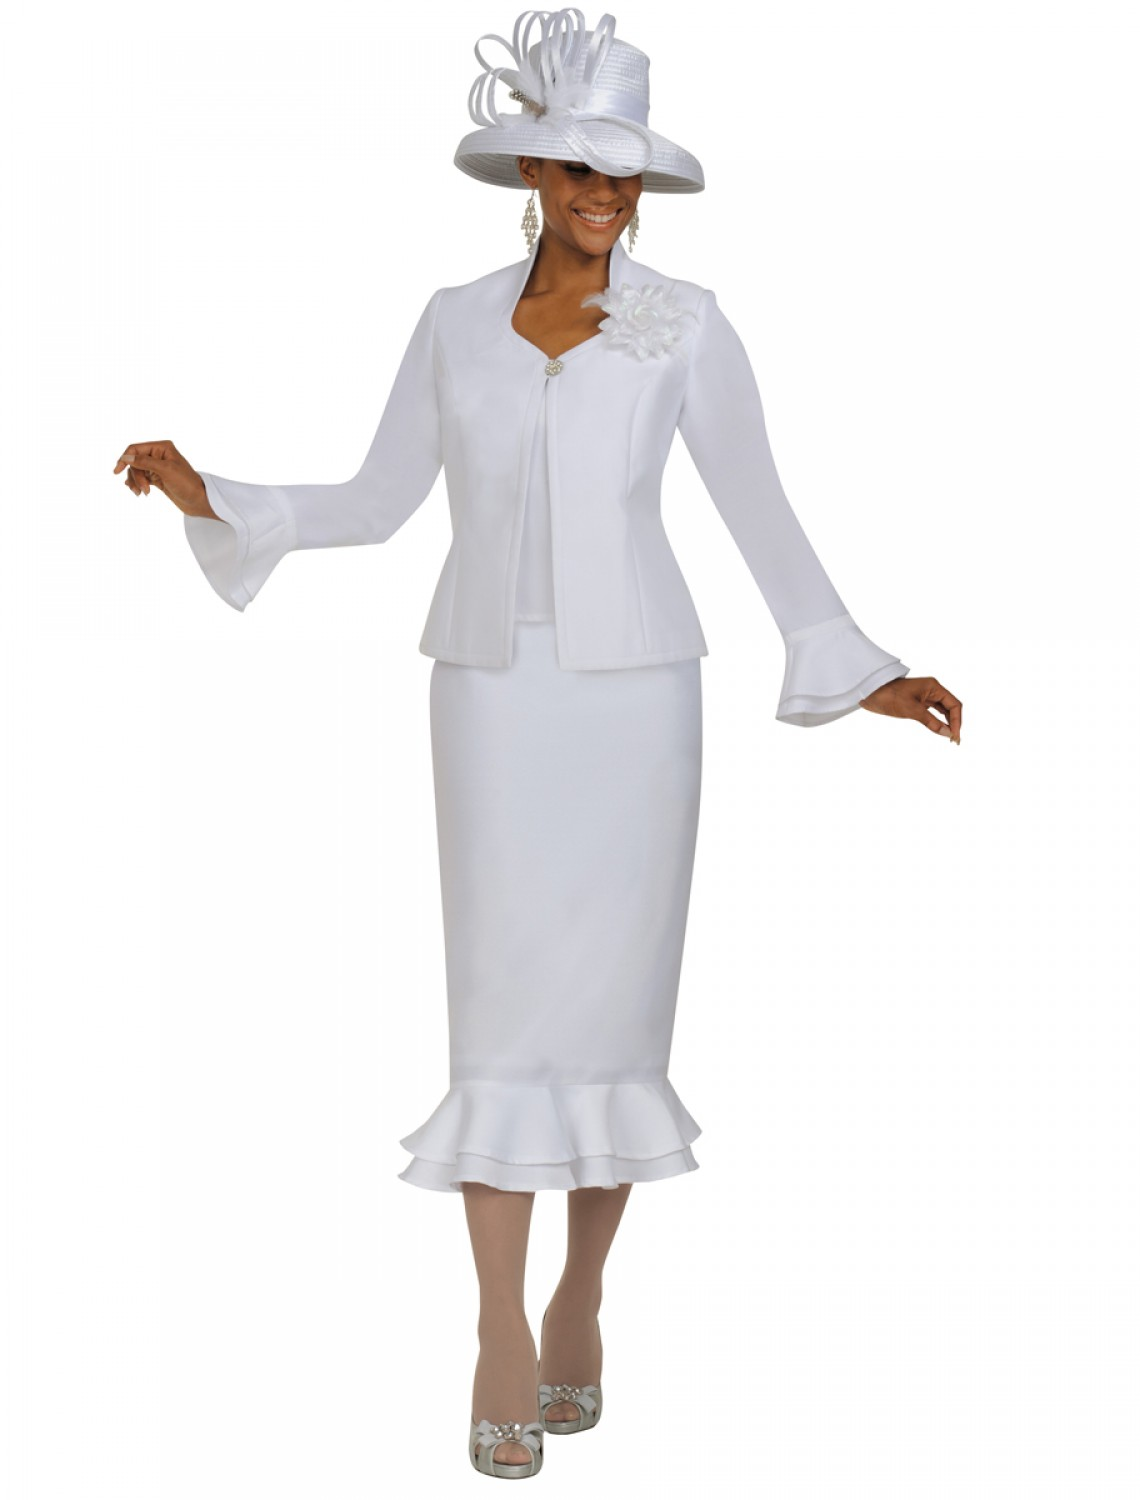 29 innovative Women Skirt Suits For Church – playzoa.com